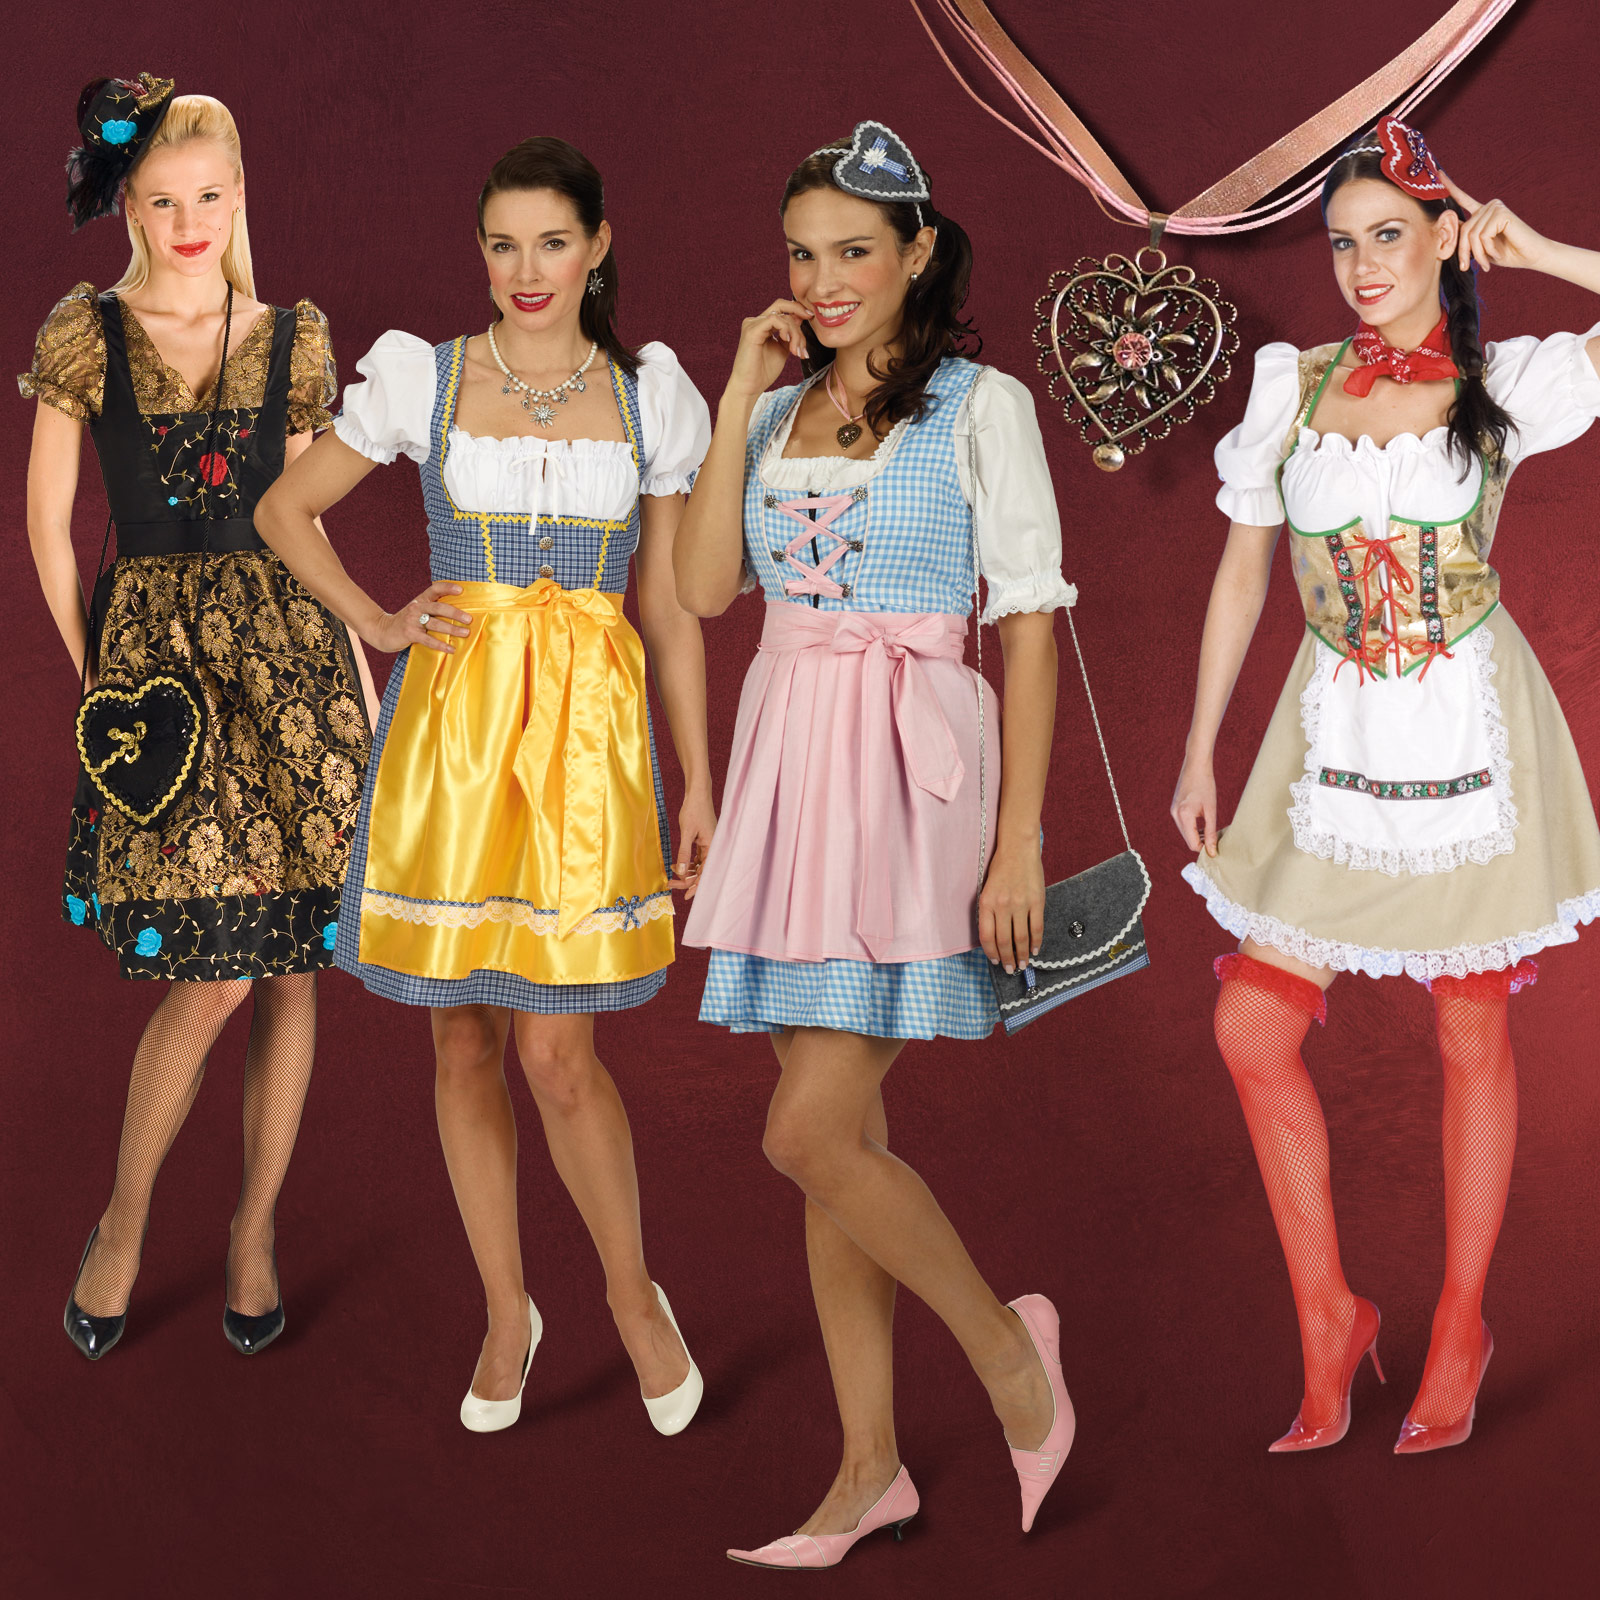 dirndl kleider oktoberfest wiesn tracht damen kost m. Black Bedroom Furniture Sets. Home Design Ideas